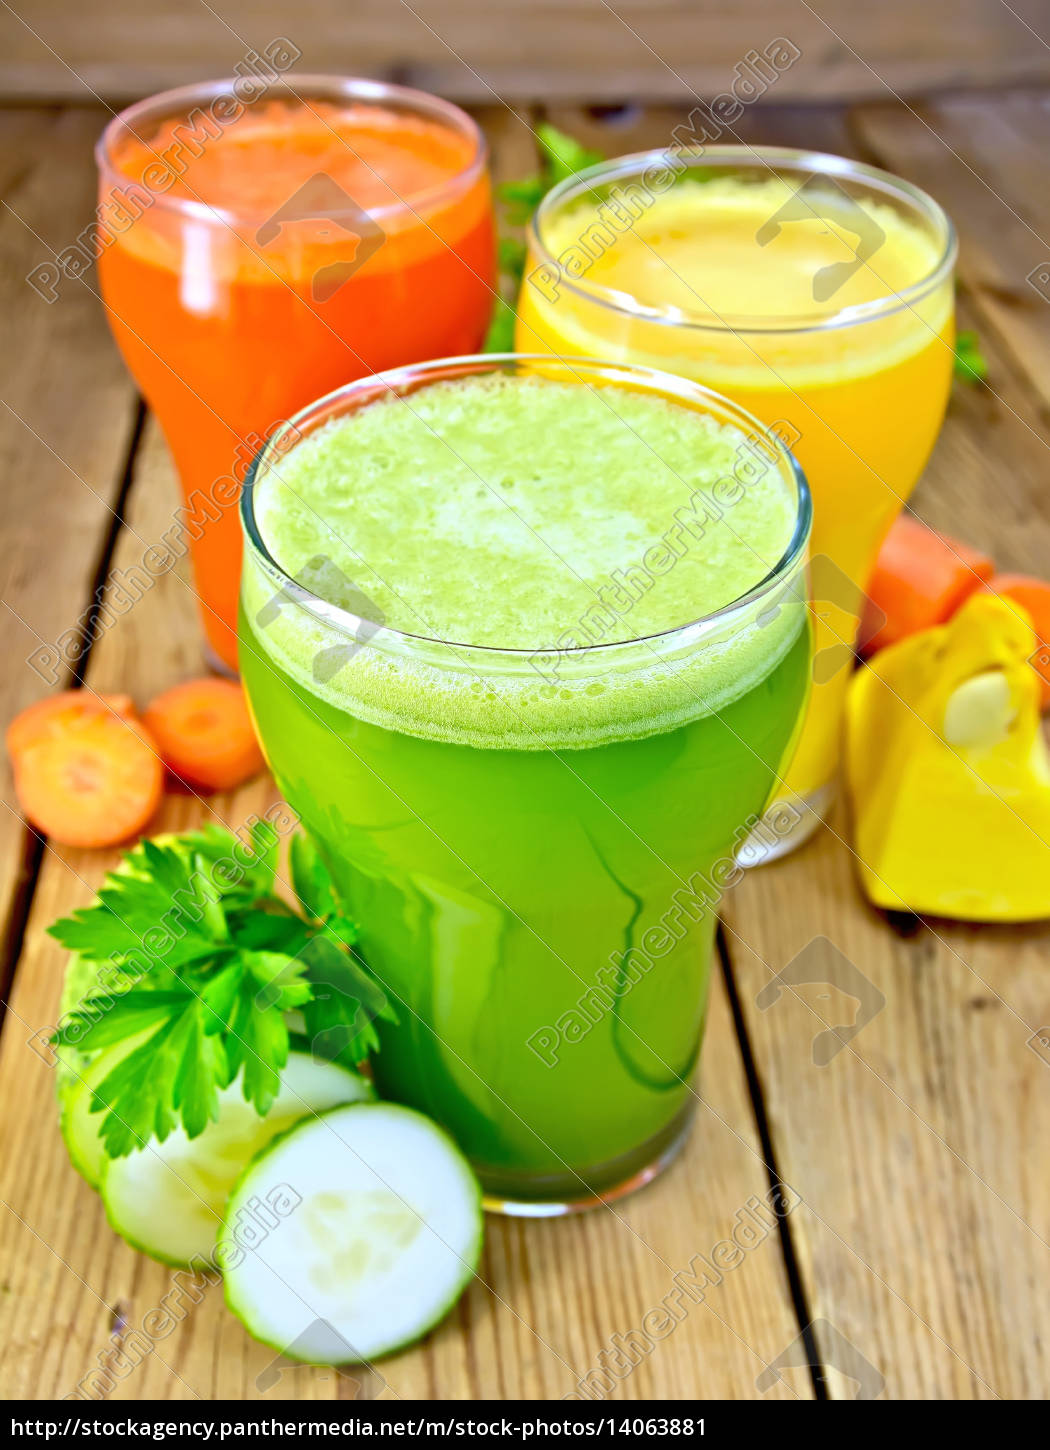 juice, cucumber, and, vegetable, in, three - 14063881